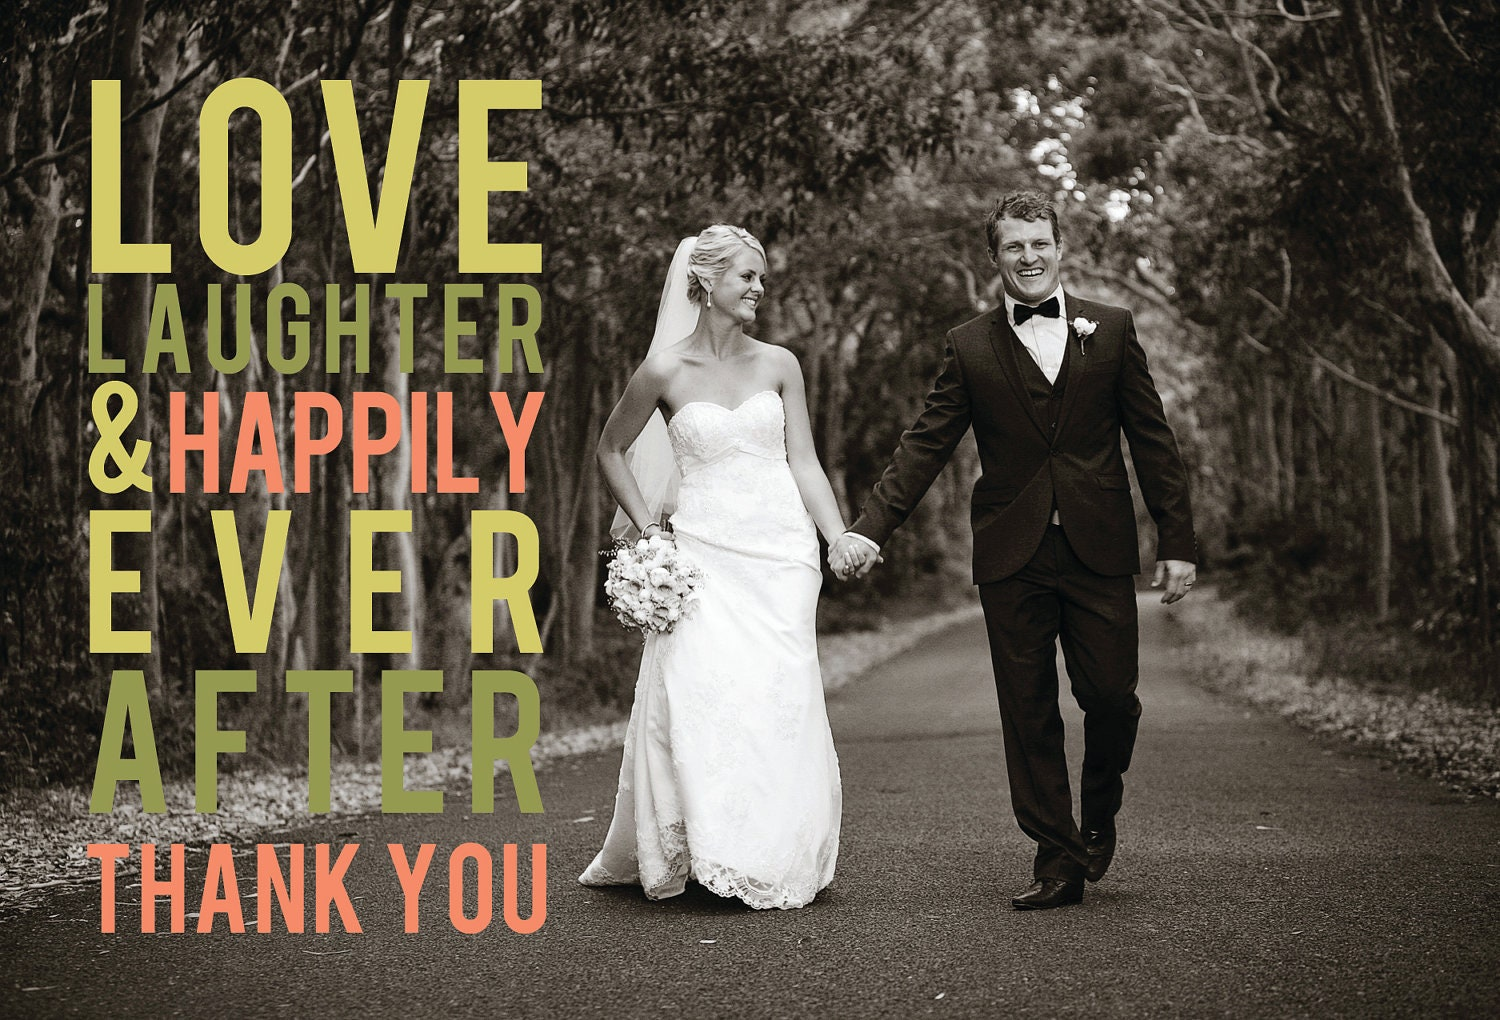 Ever After Wedding Thank You Card Design – Thank You Cards After Wedding